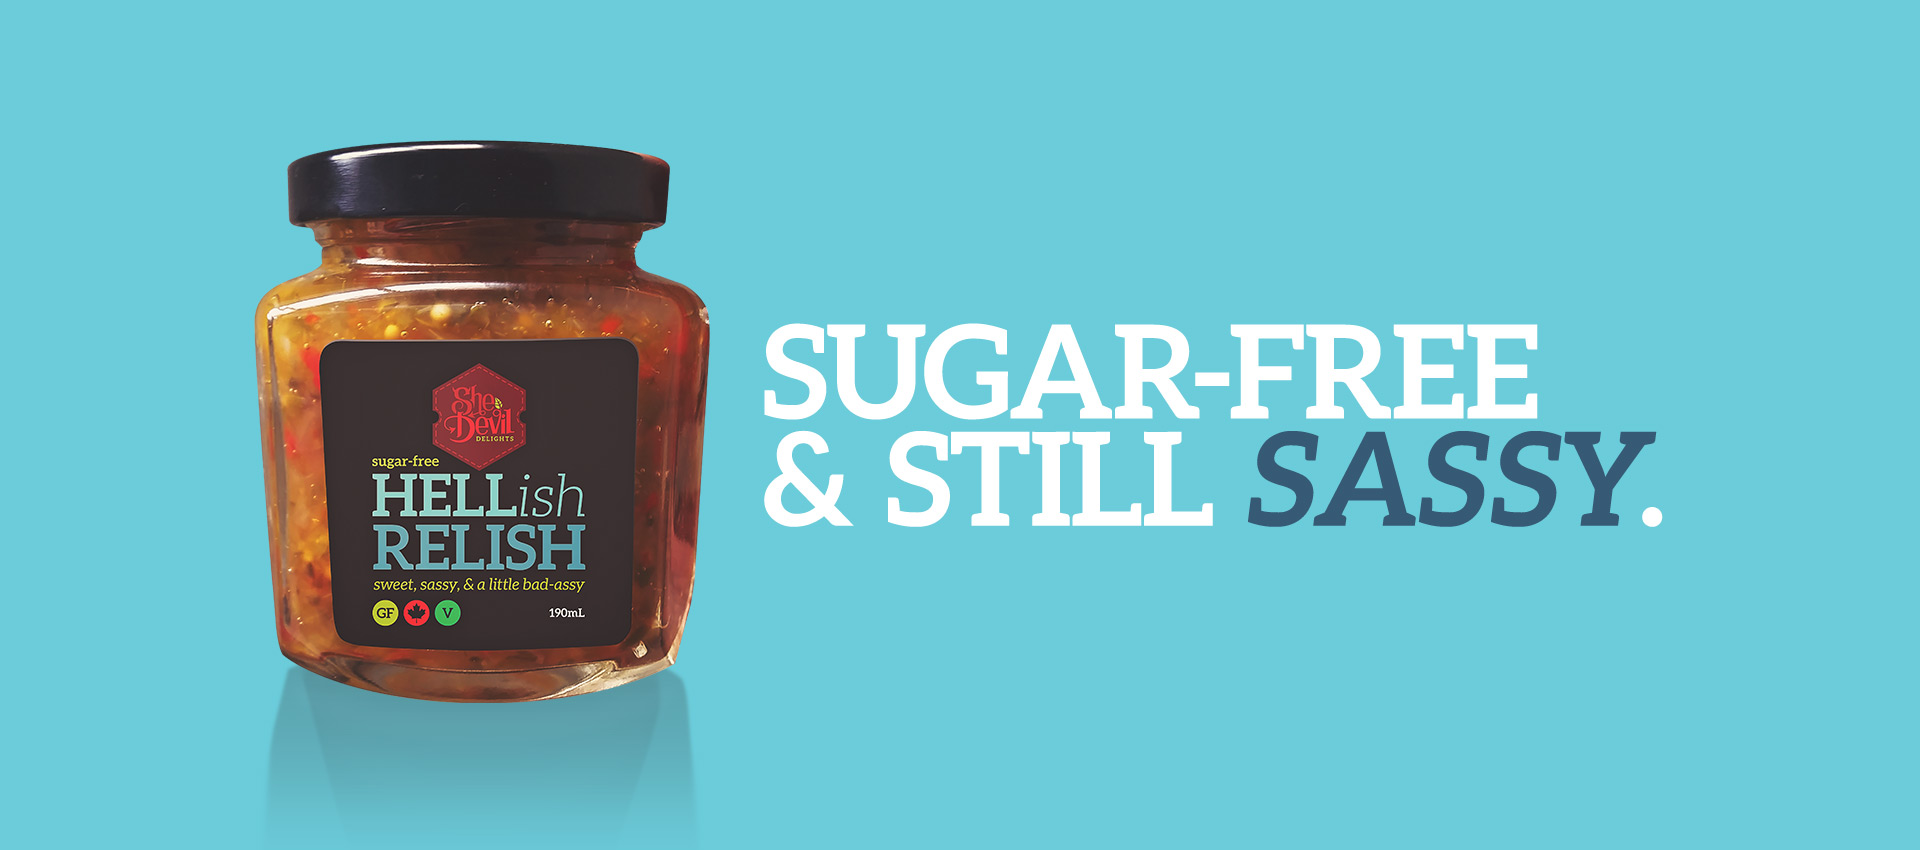 hellish relish sugar free